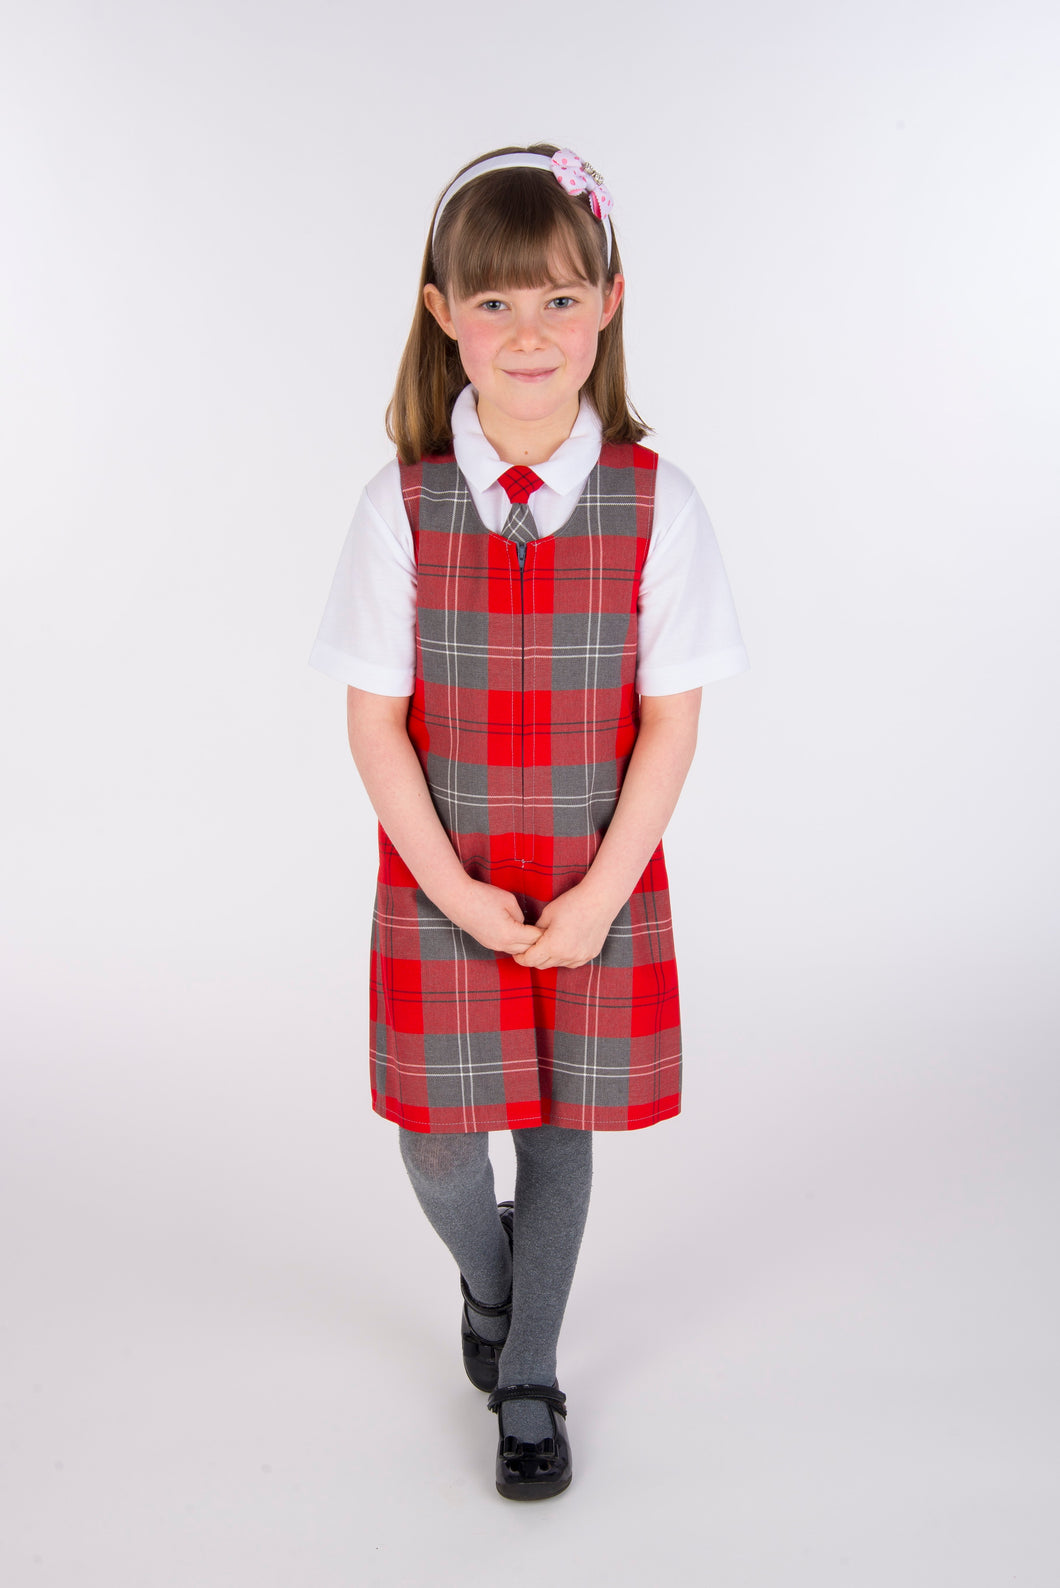 buy slim fit red and grey tartan school pinafore in size 3-4 4-5 5-6 6-7 7-8 8-9 9-10 11-11 11-12 13